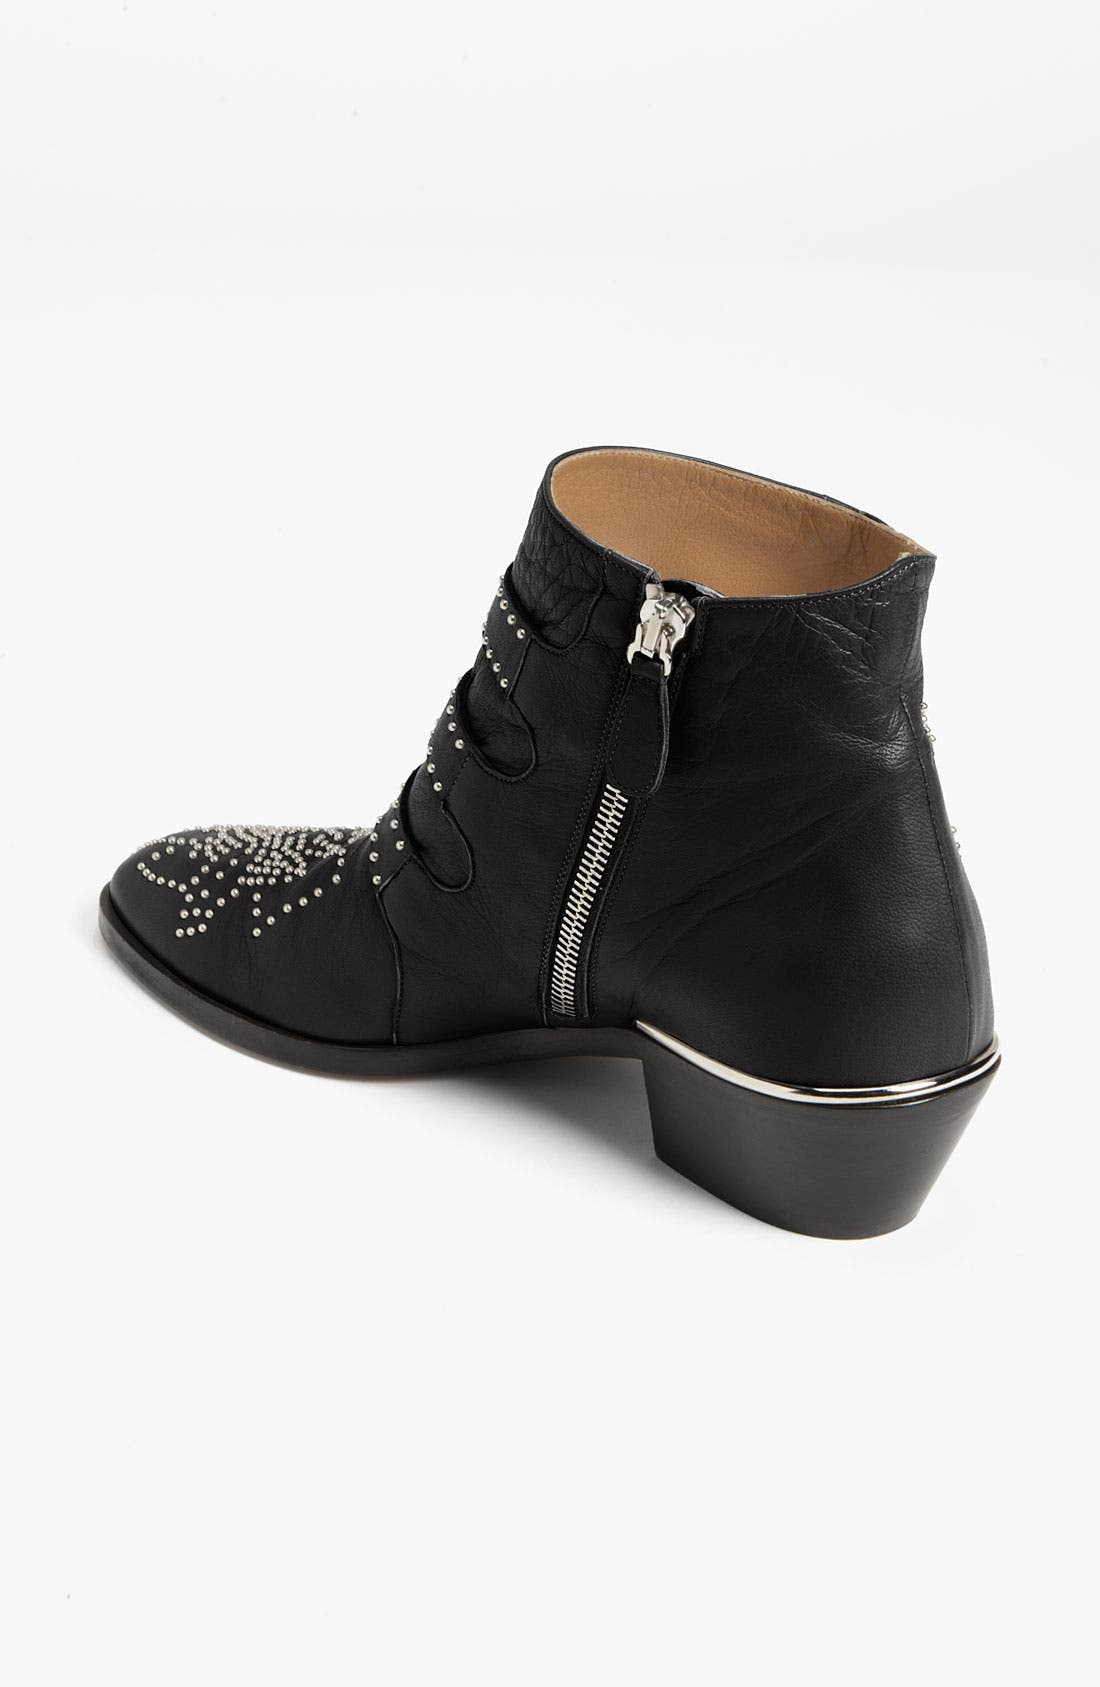 'Suzanna' Stud Buckle Bootie,                             Alternate thumbnail 4, color,                             001